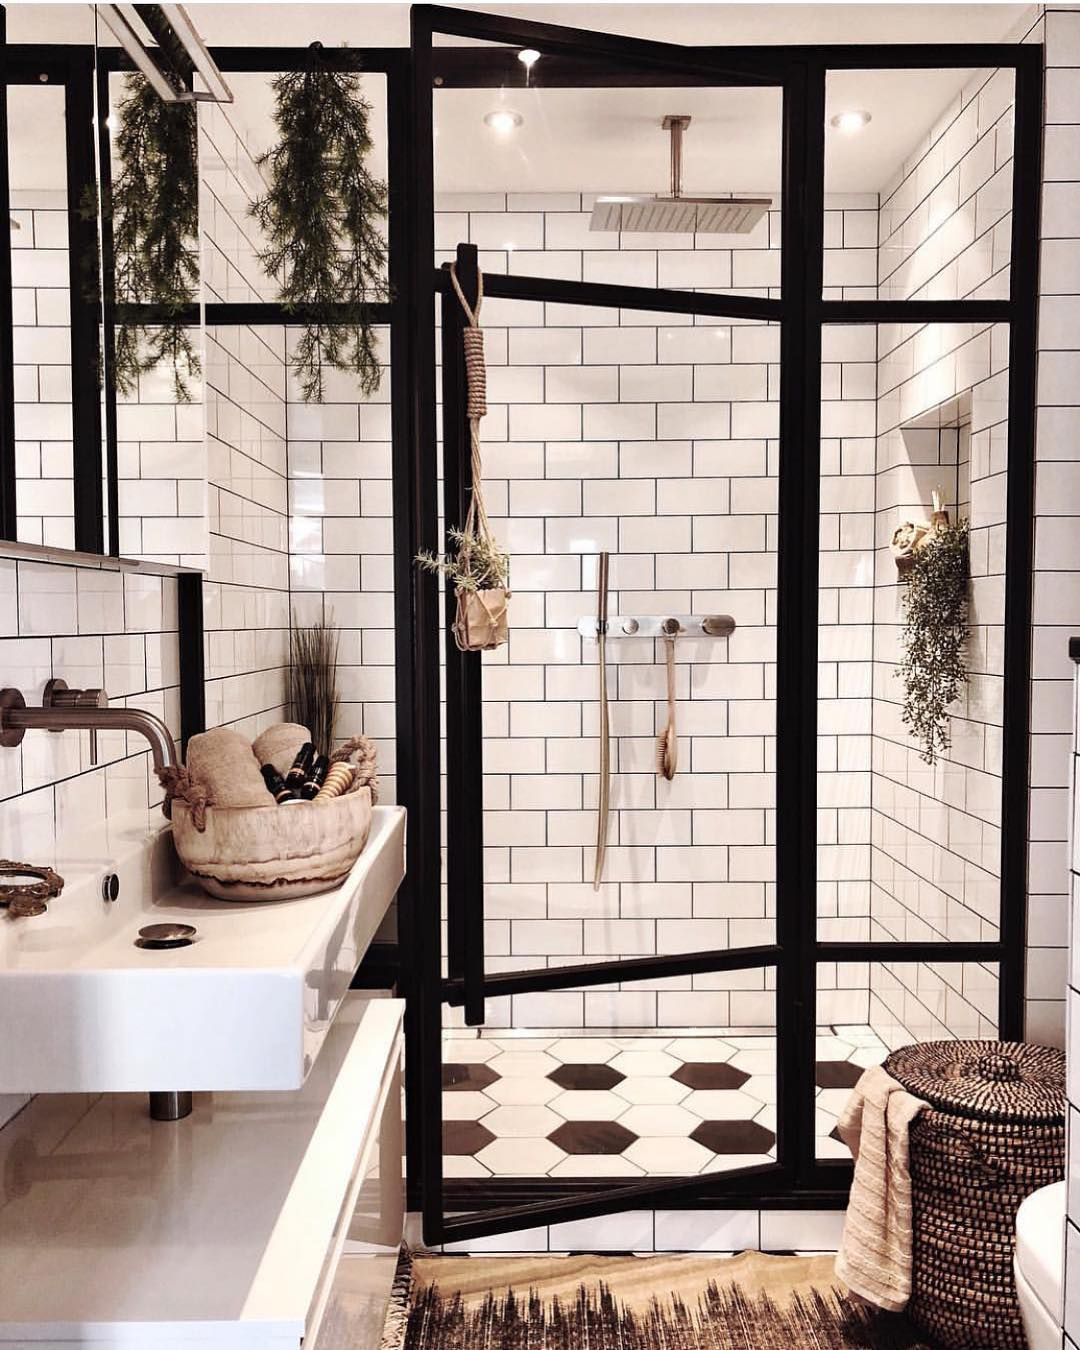 """Bathrooms of Instagram on Instagram: """"Obsessed with these thick framed shower doors!! Design: @andrea_groot  #bathroomdesign #bathroomdecor #realestate #bathroomsofinsta…"""""""